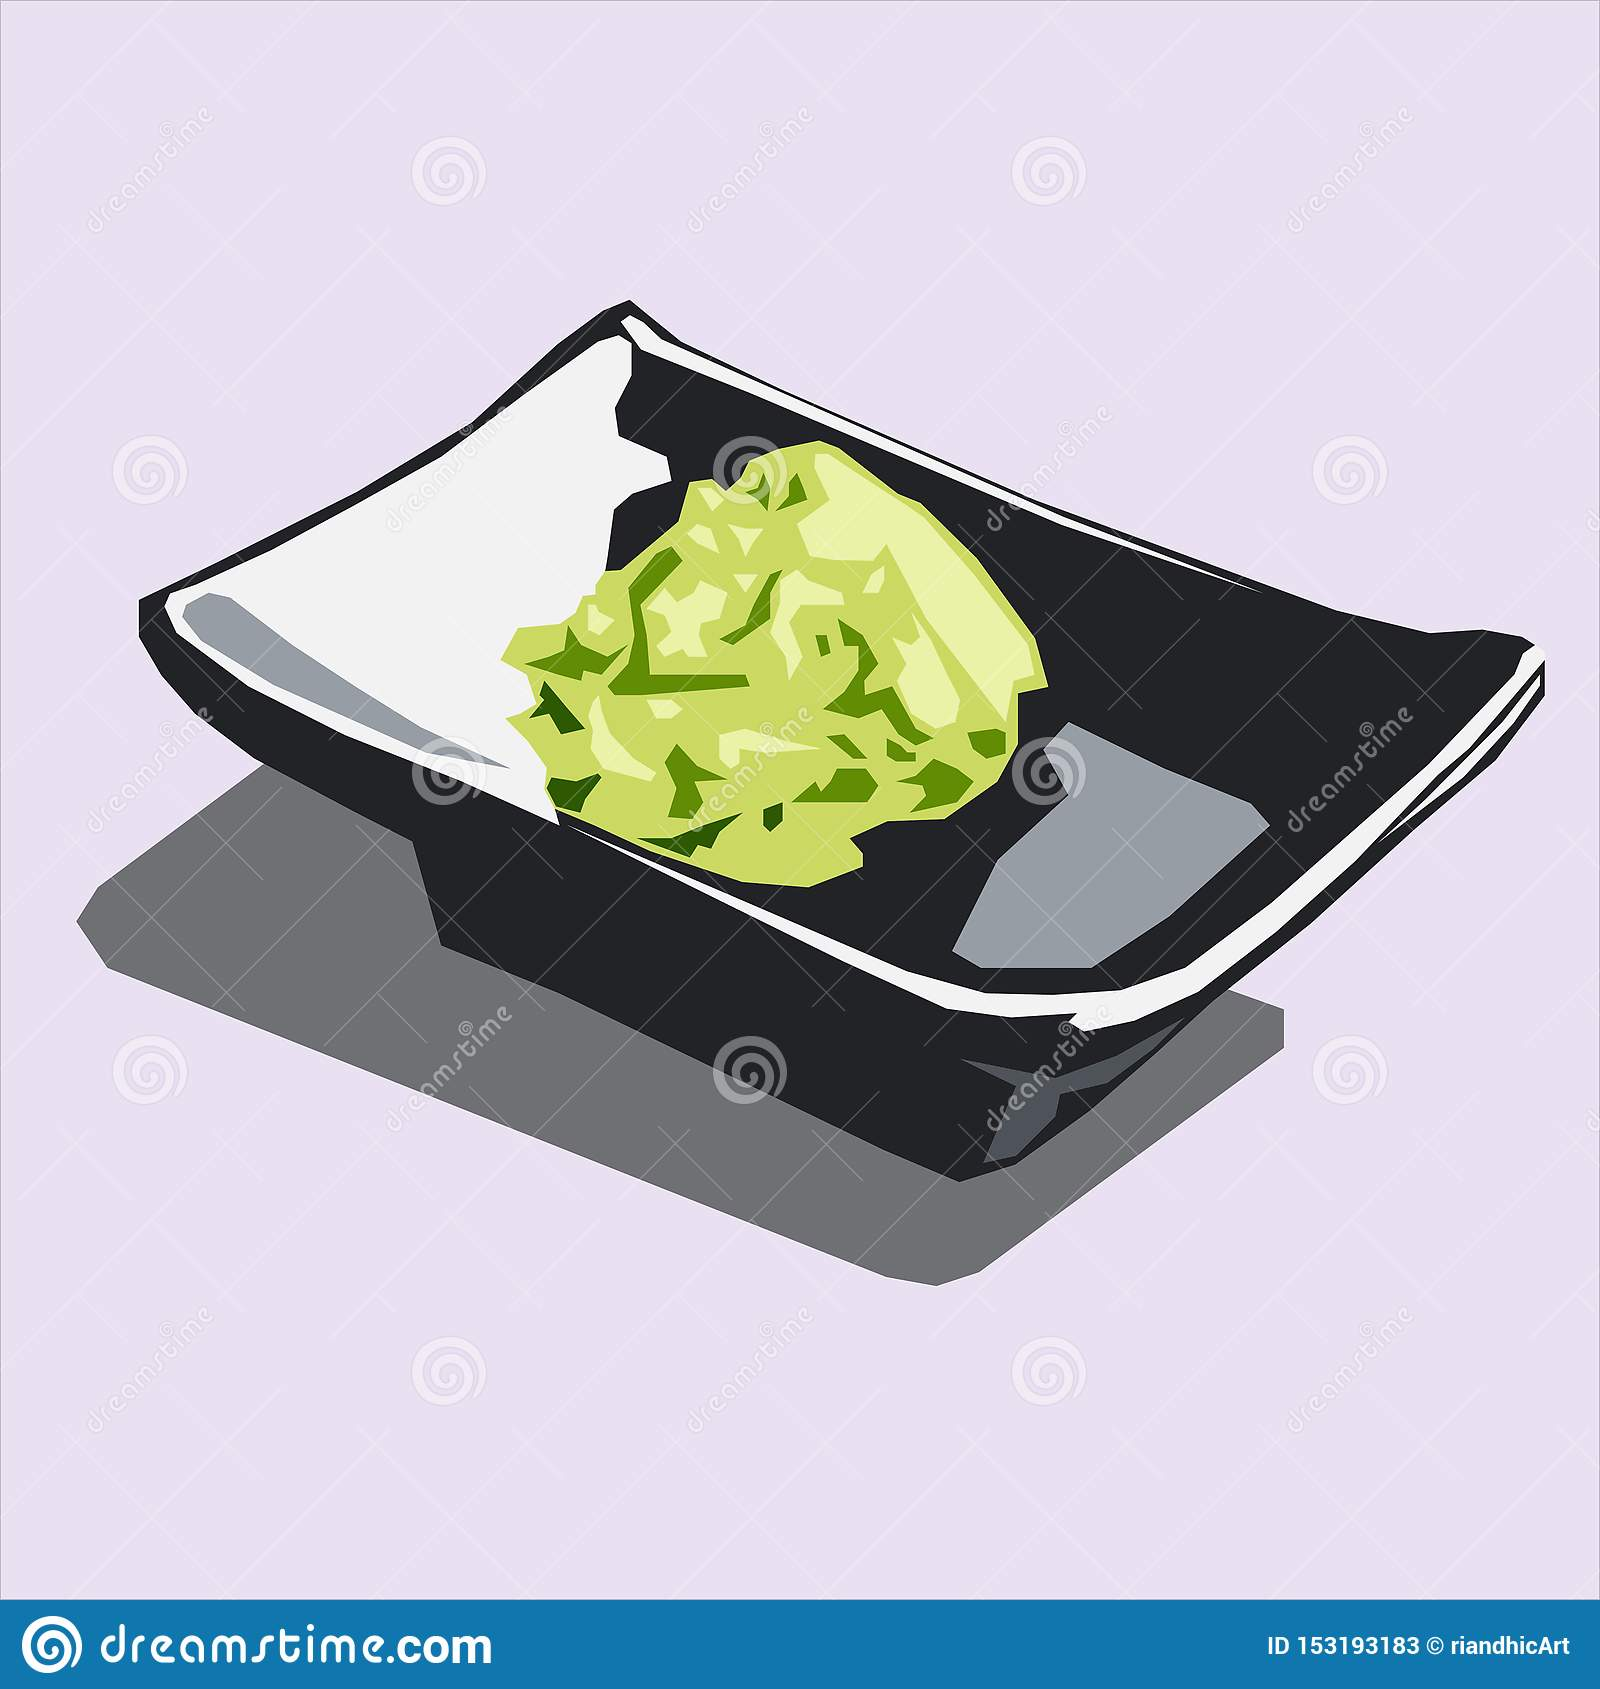 Wasabi on black plate icon logo avatar